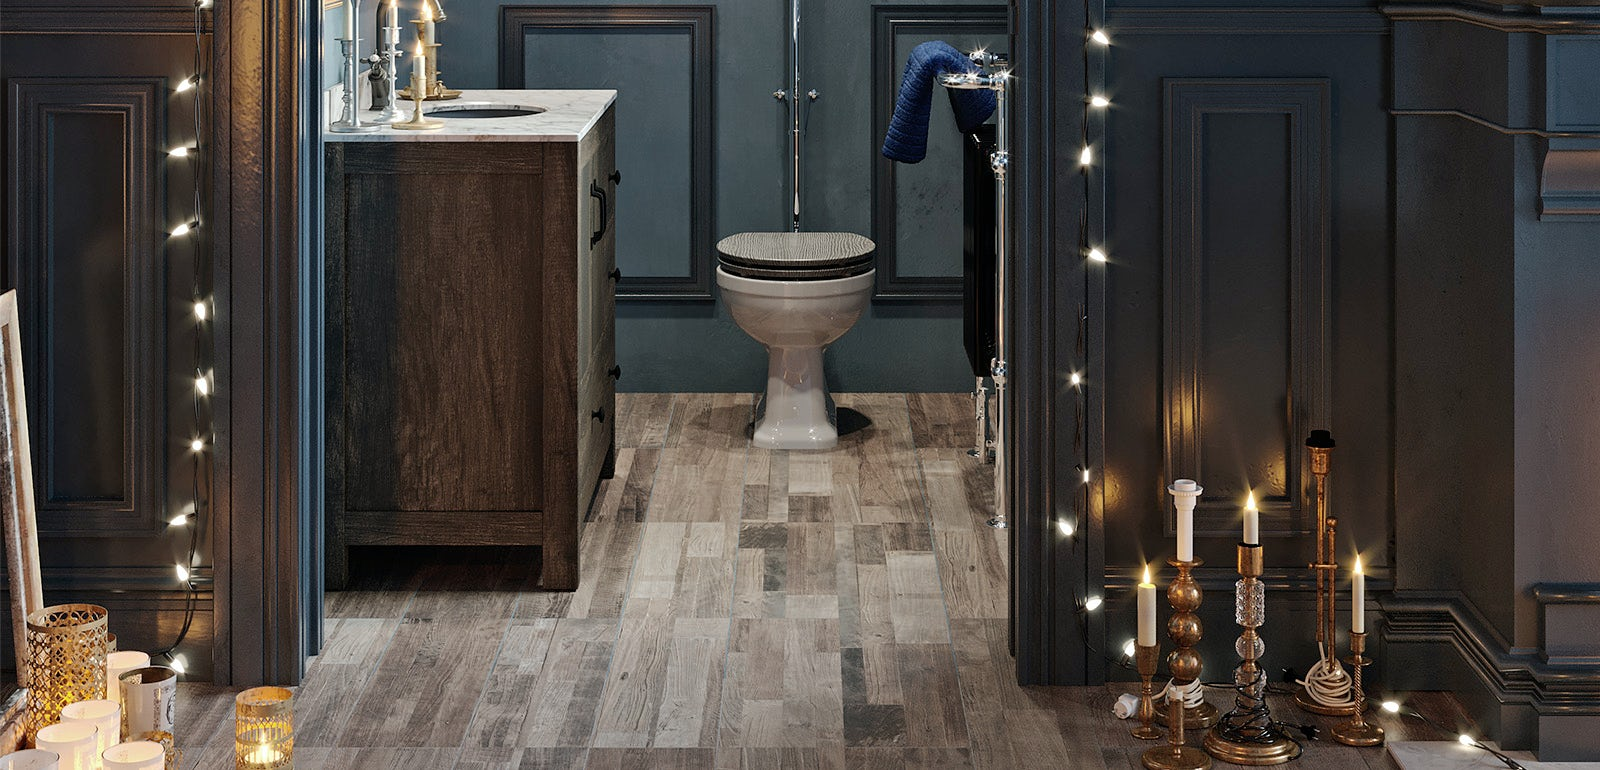 Bathroom Ideas: Enchanted Winter part 2